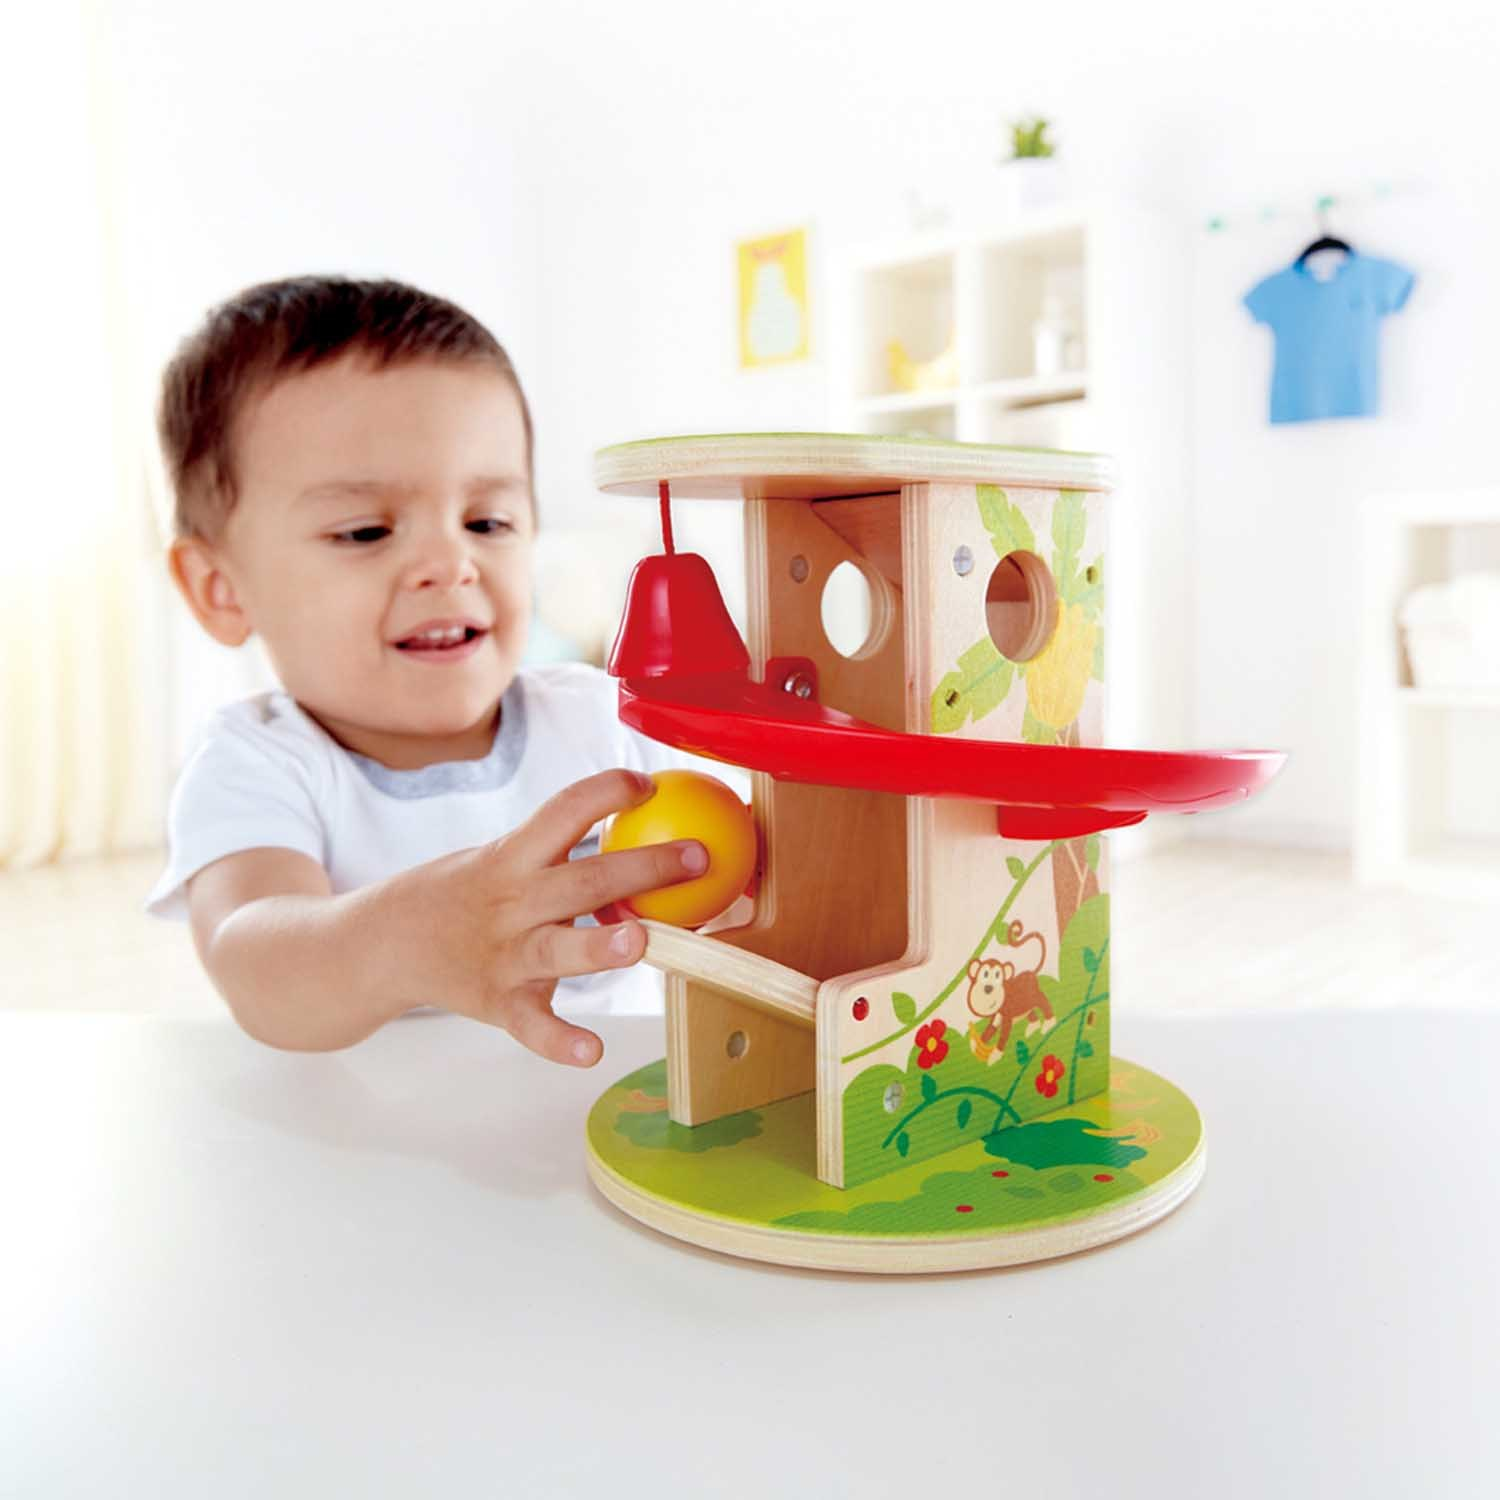 Hape: Jungle Press & Slide - Playset image